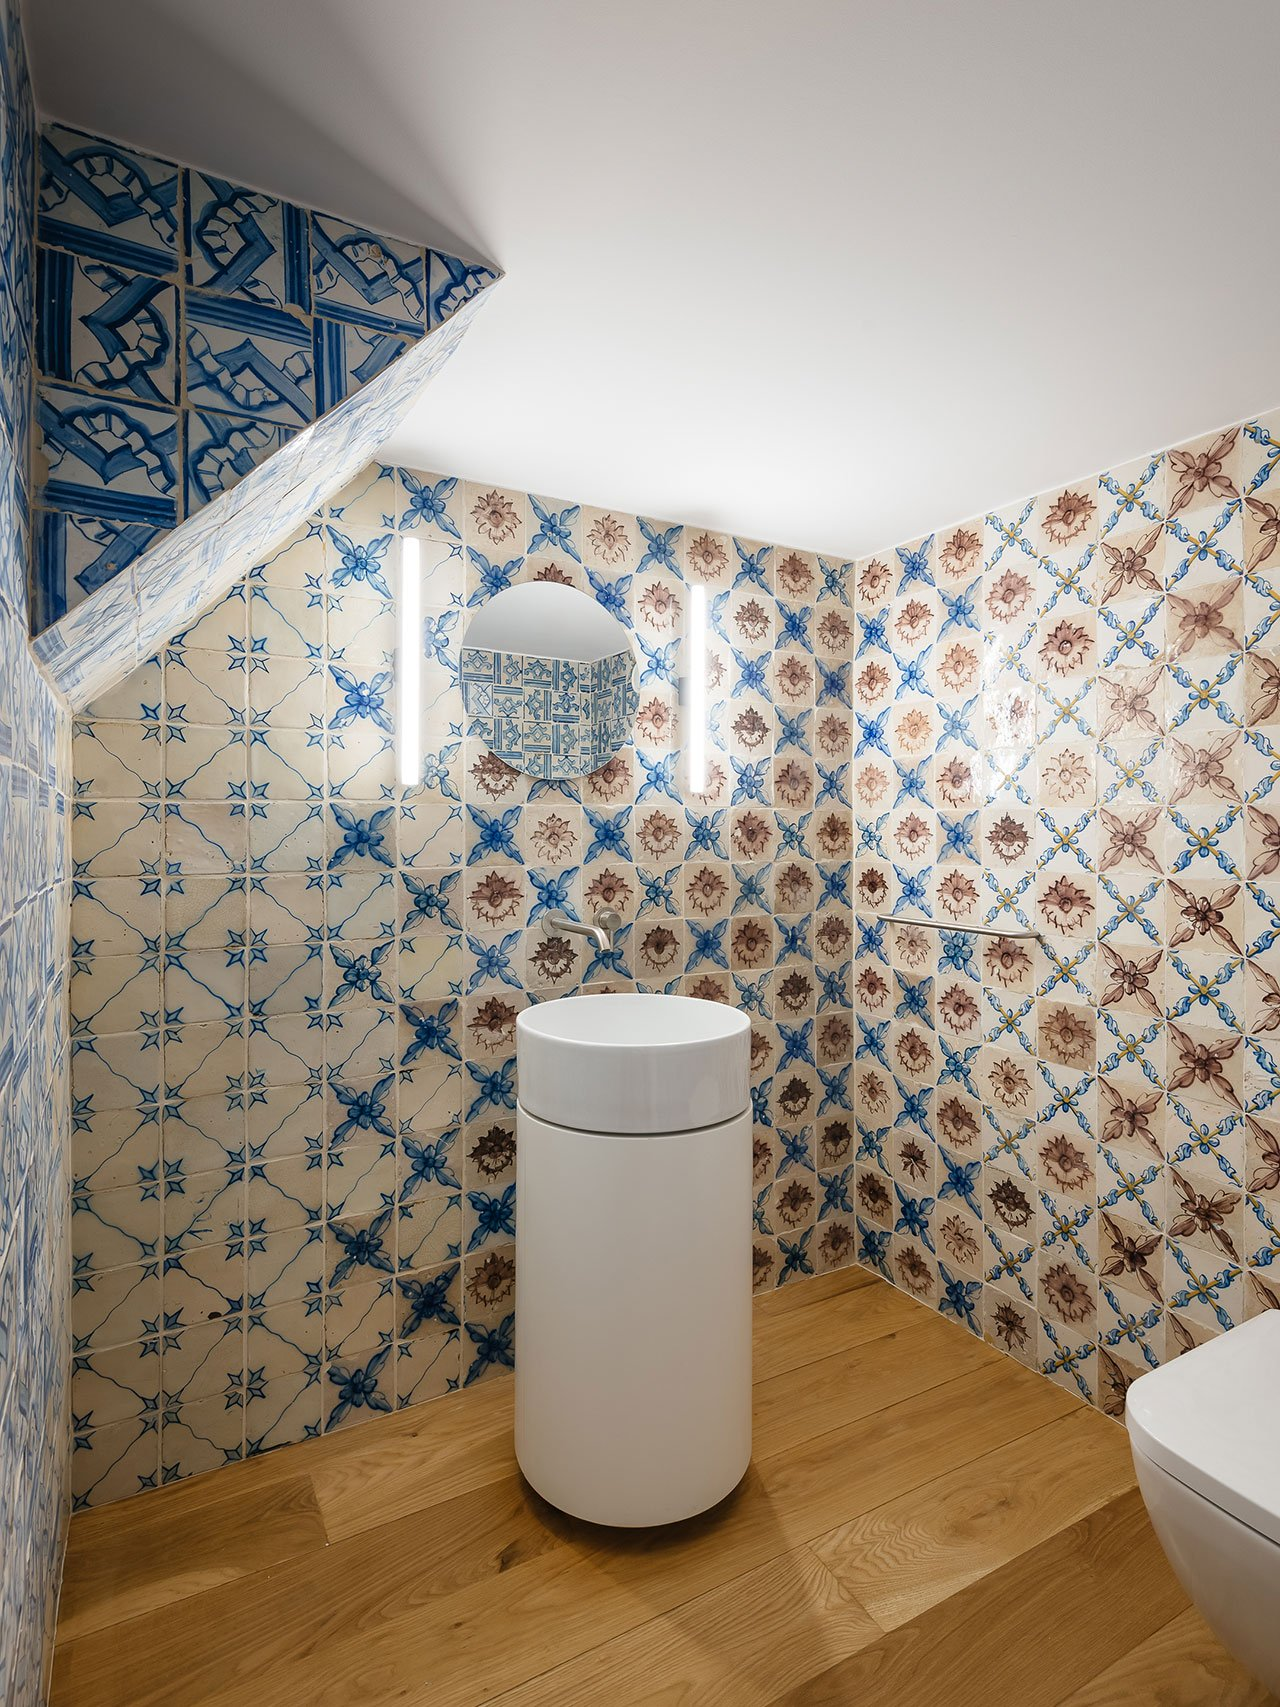 The powder room can boast of cool blue and white azulejo tiles for a bright and chic look